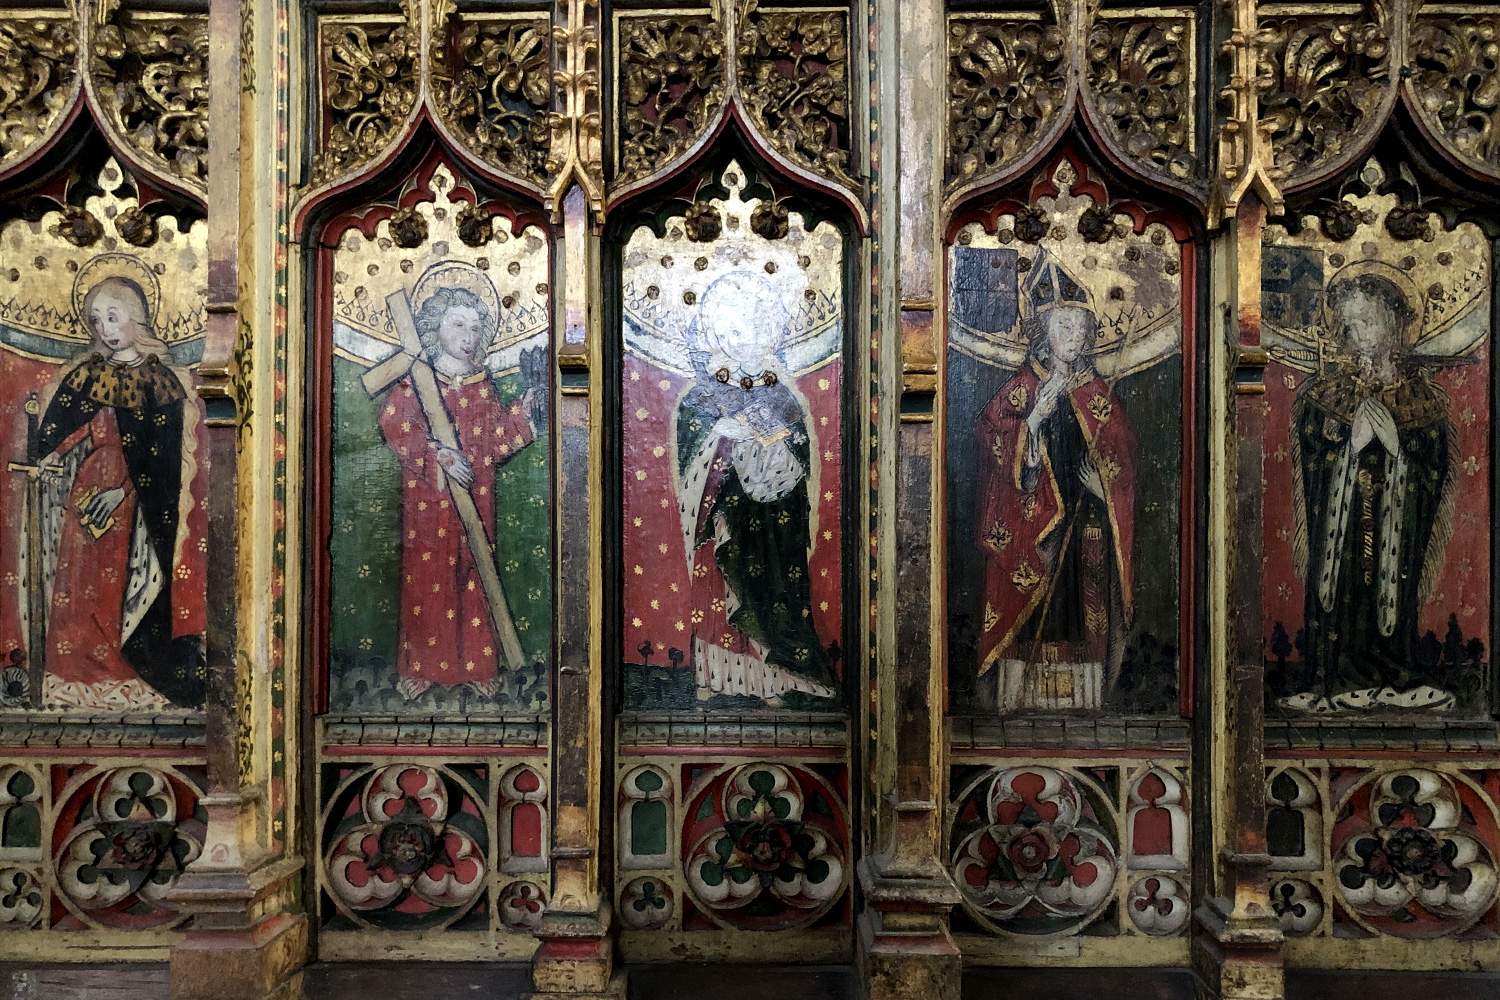 St Peter and St Paul, Eye. The figures on the dado screen, painted around 1500.